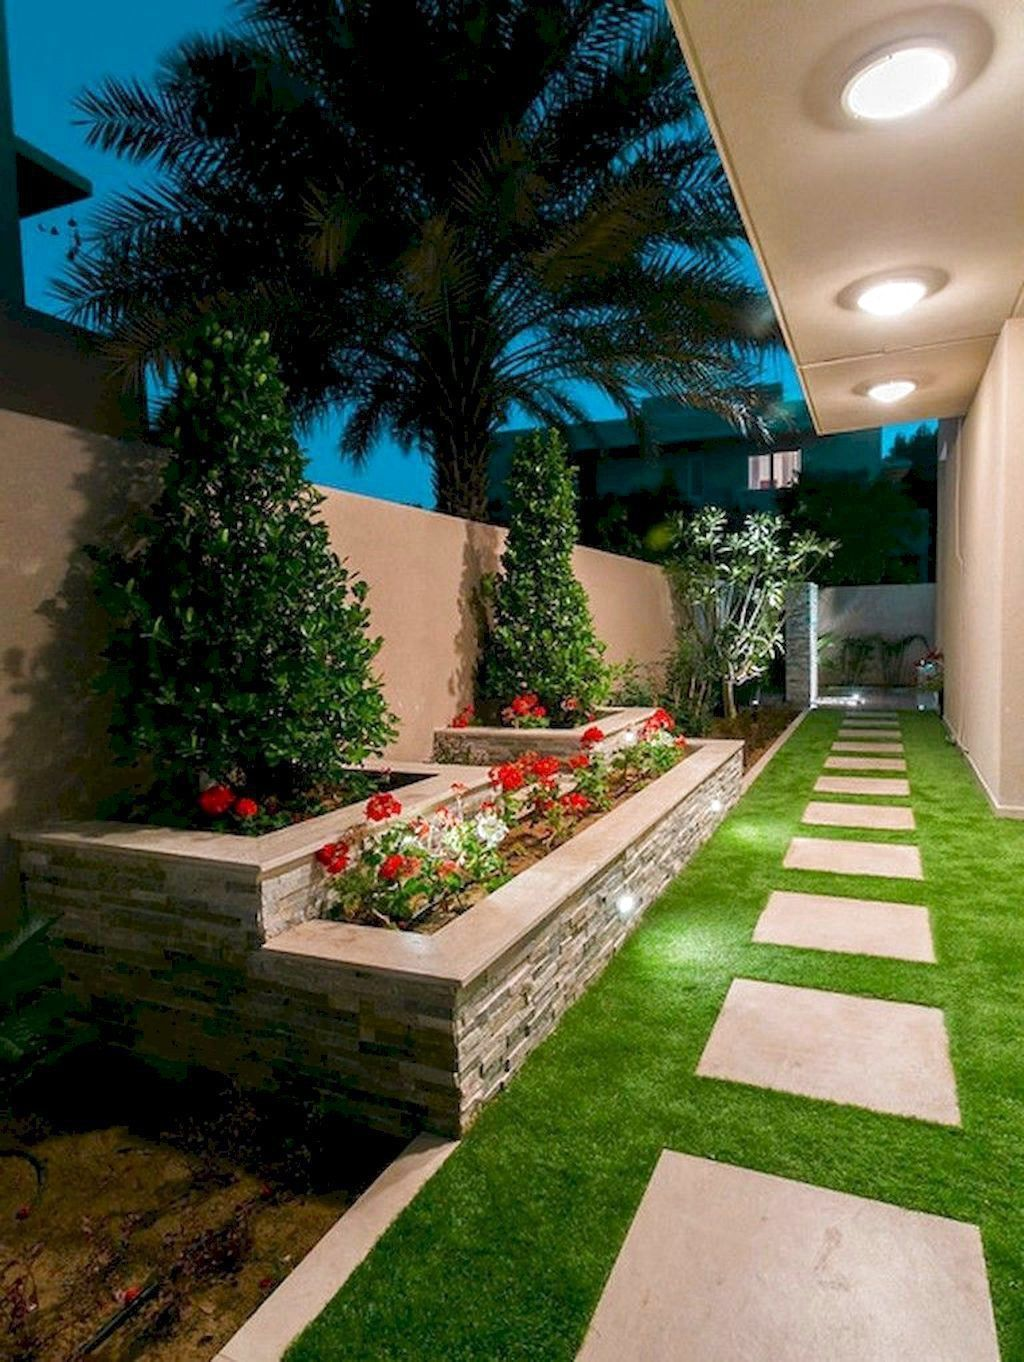 70 Favourite Side House Garden Landscaping Decoration Ideas With Rocks Home Garden Diy Backyard Landscaping Small Backyard Landscaping Side Yard Landscaping